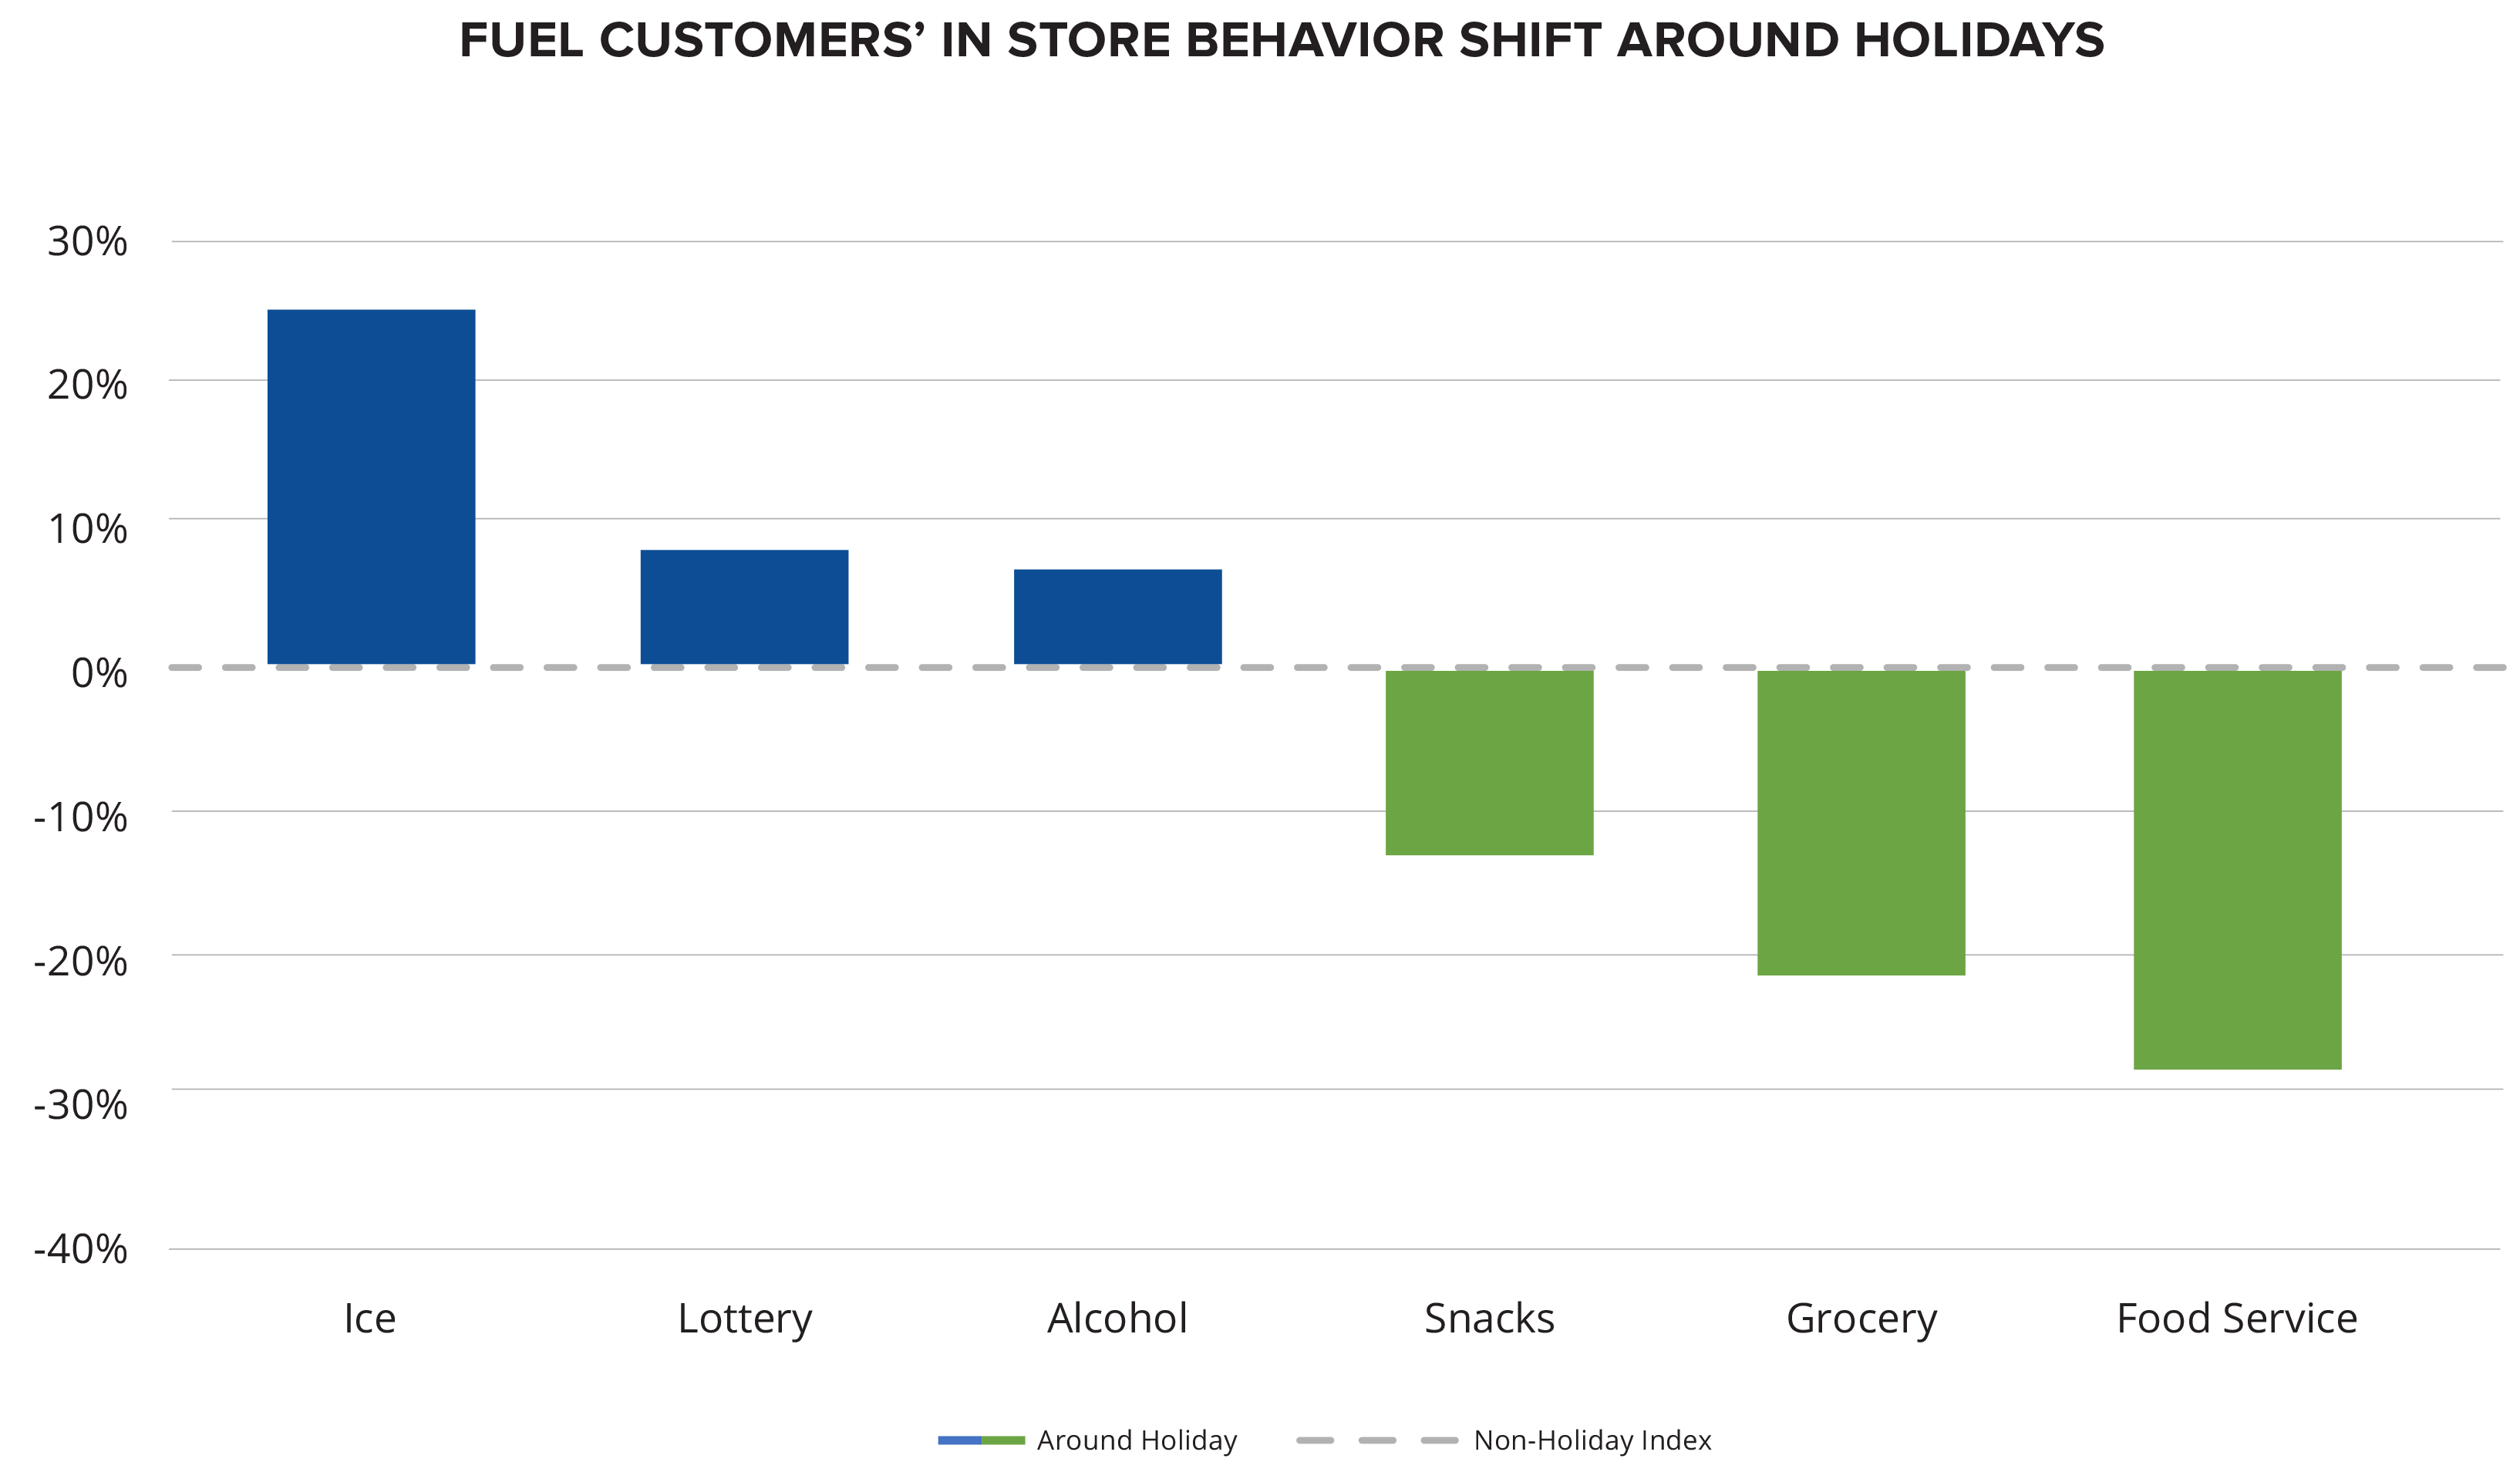 A bar graph showing that sales of ice, lottery tickets, and alcohol increase among fuel consumers during holiday periods, while sales of snacks, prepared foods, and grocery items fall.